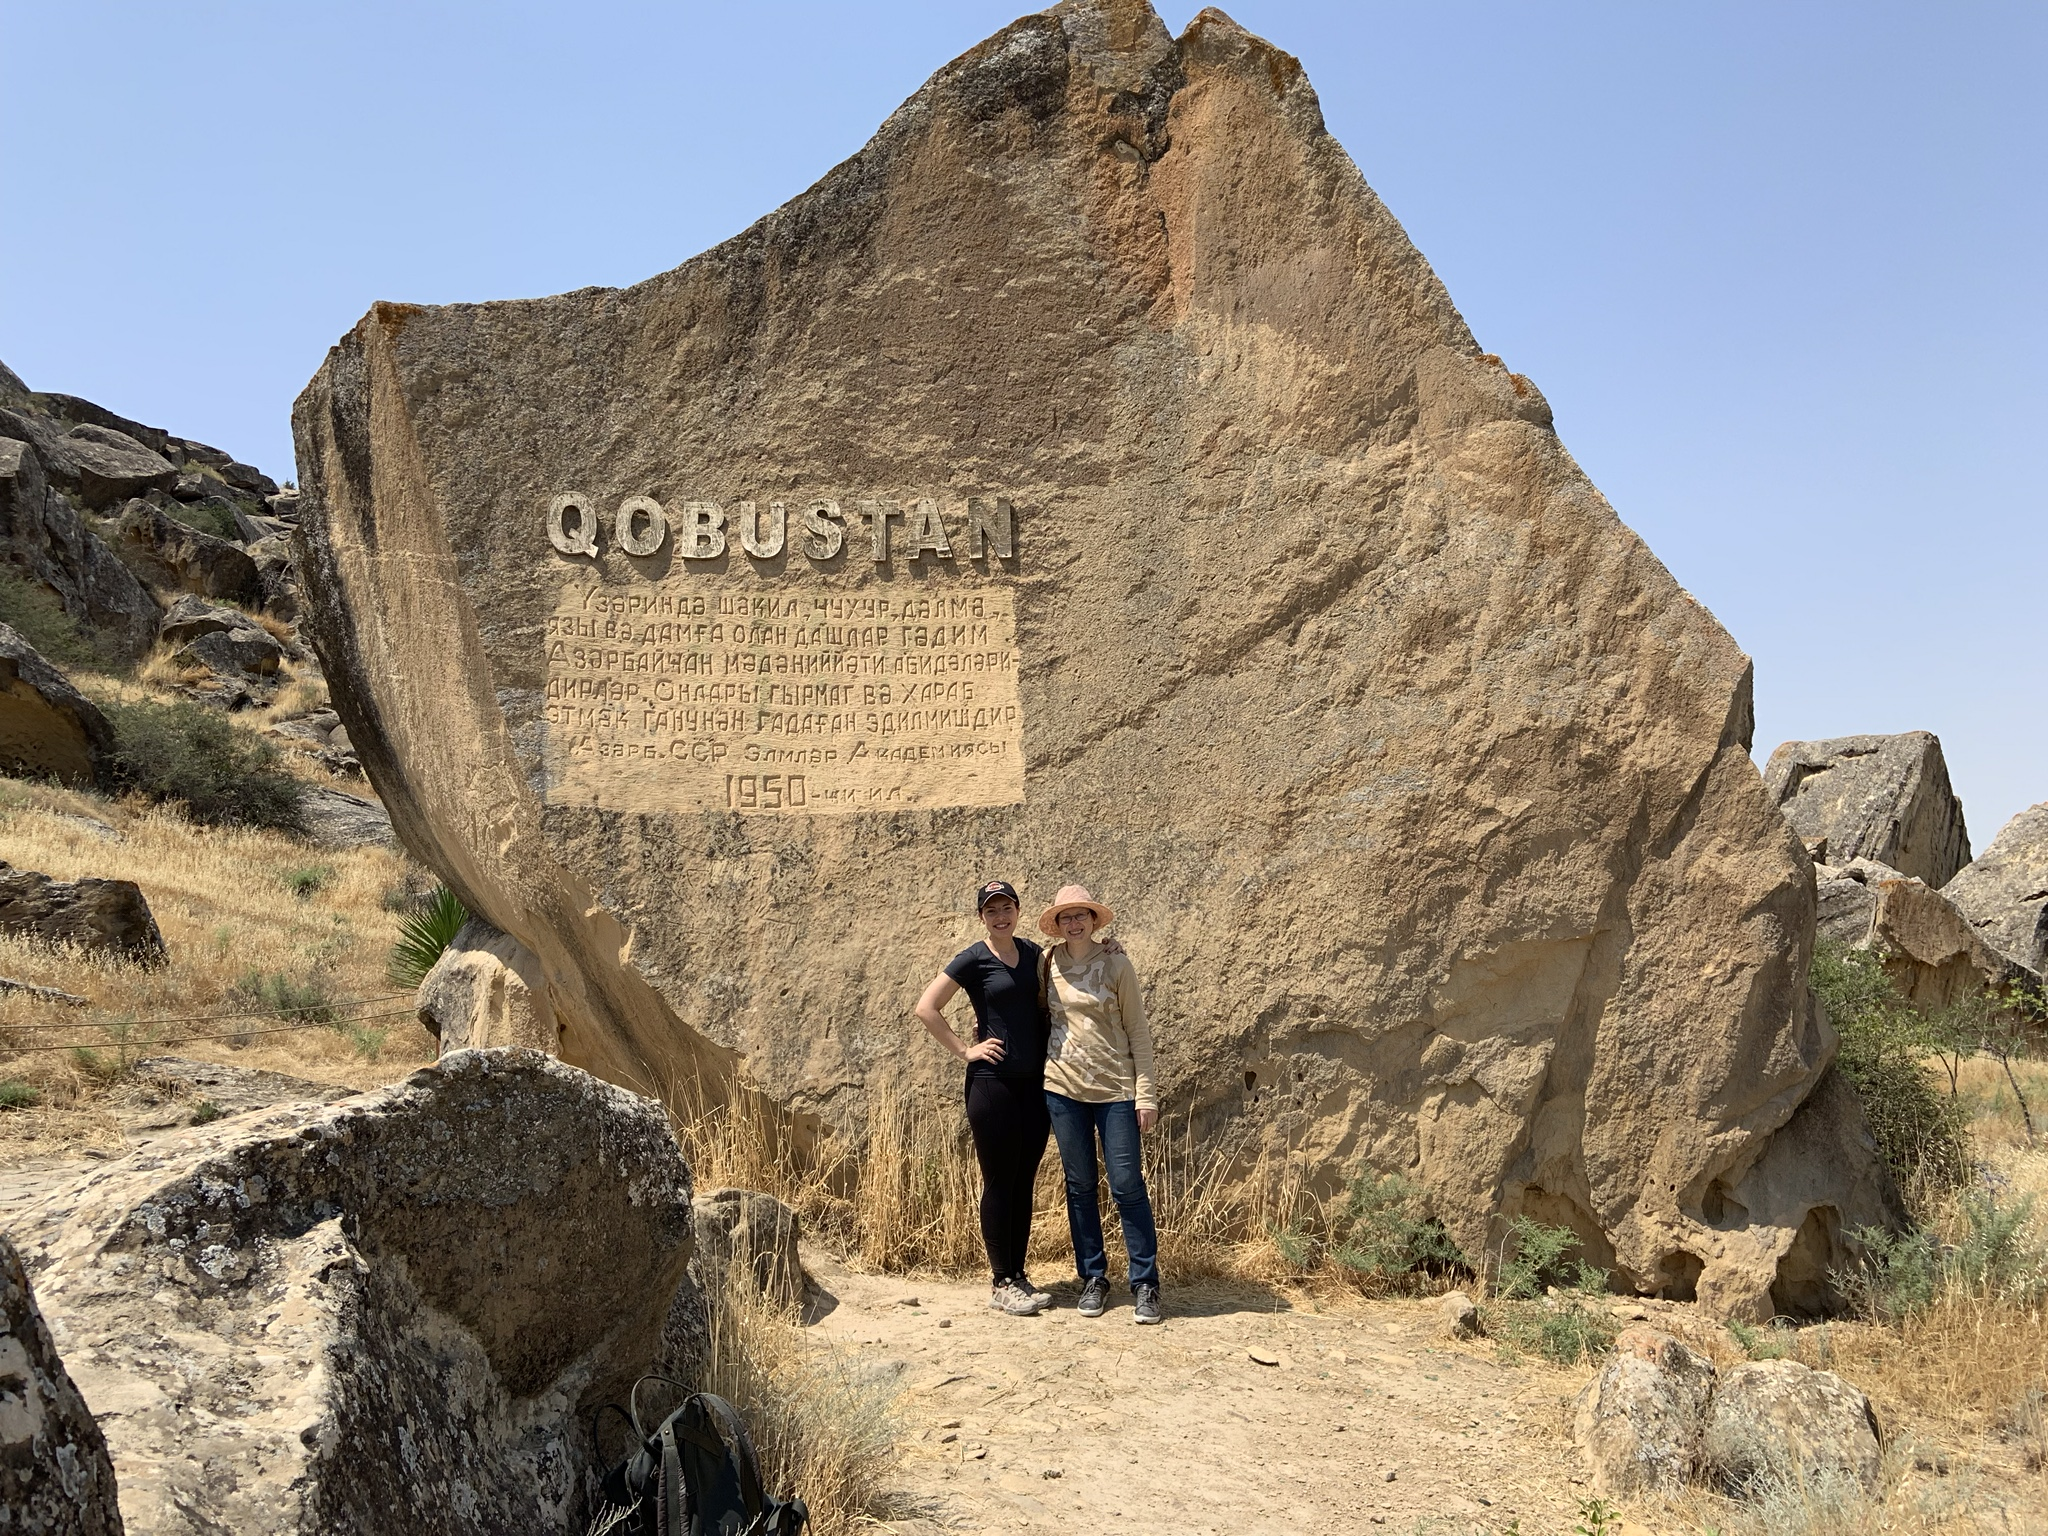 My aunt and I outside of the Gobustan National Park. She had taken the same photo over 20 years ago on a school trip with my mom.